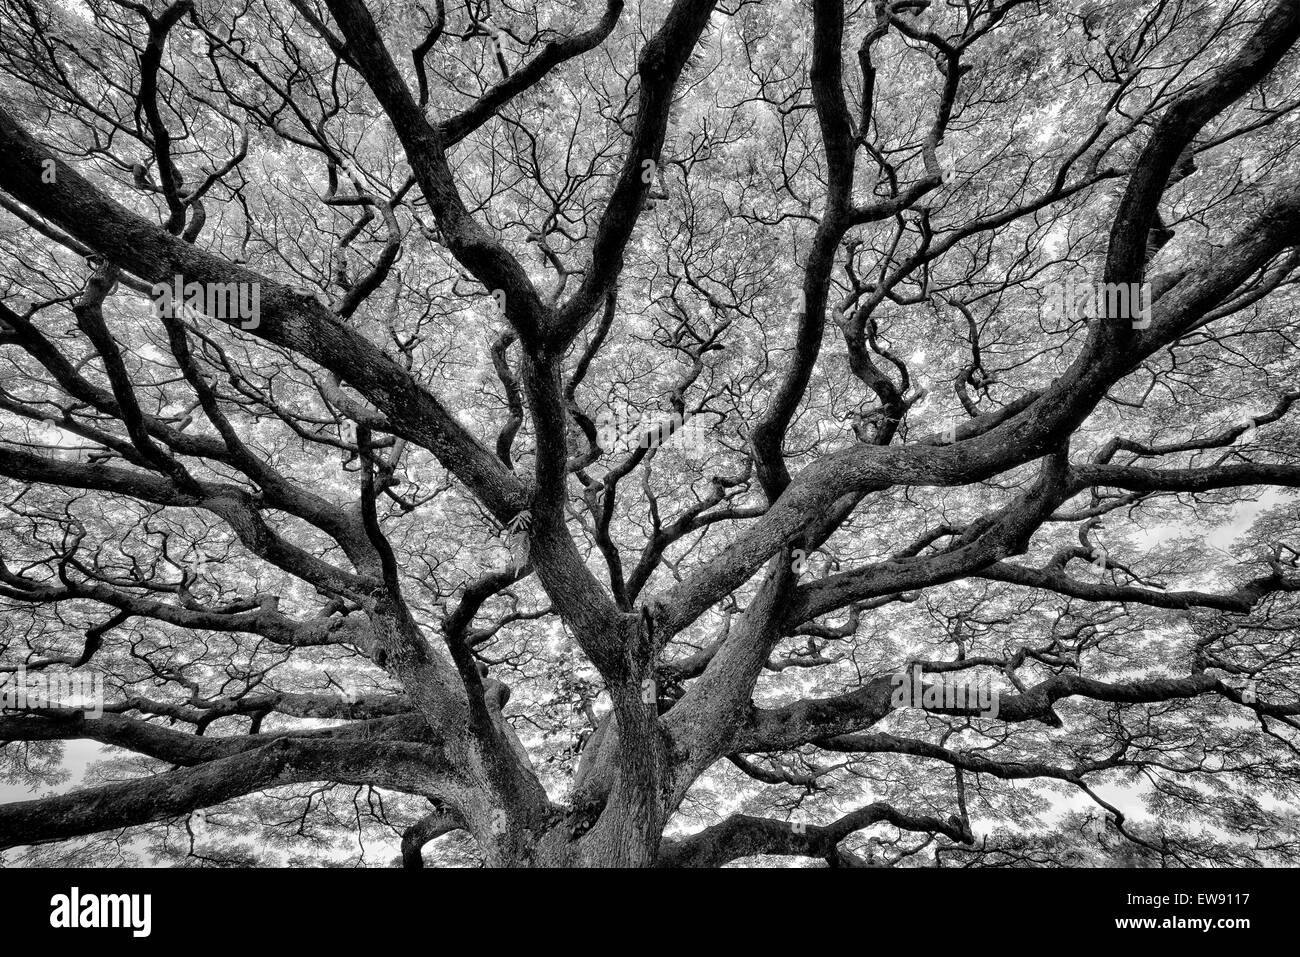 Large wildly branching tree. Hawaii, The Big Island - Stock Image